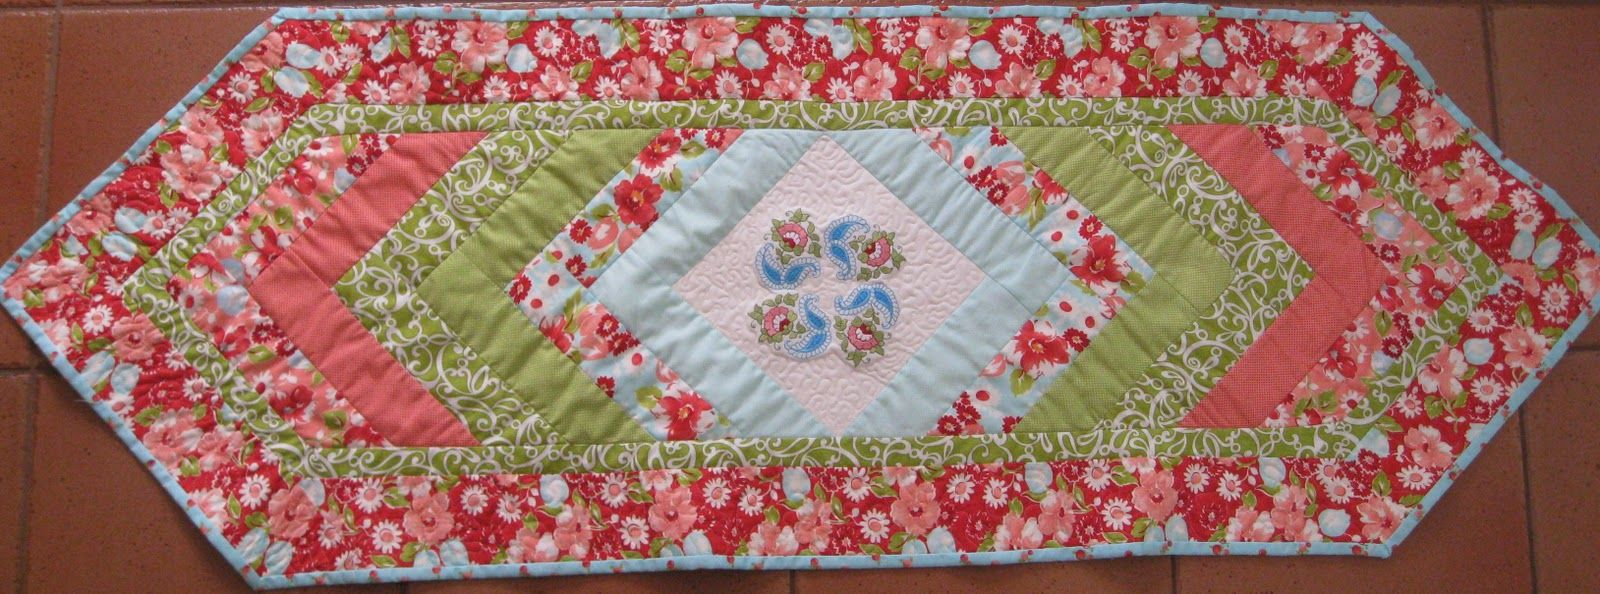 Vicki's Fabric Creations: Free Pattern /Project Downloads